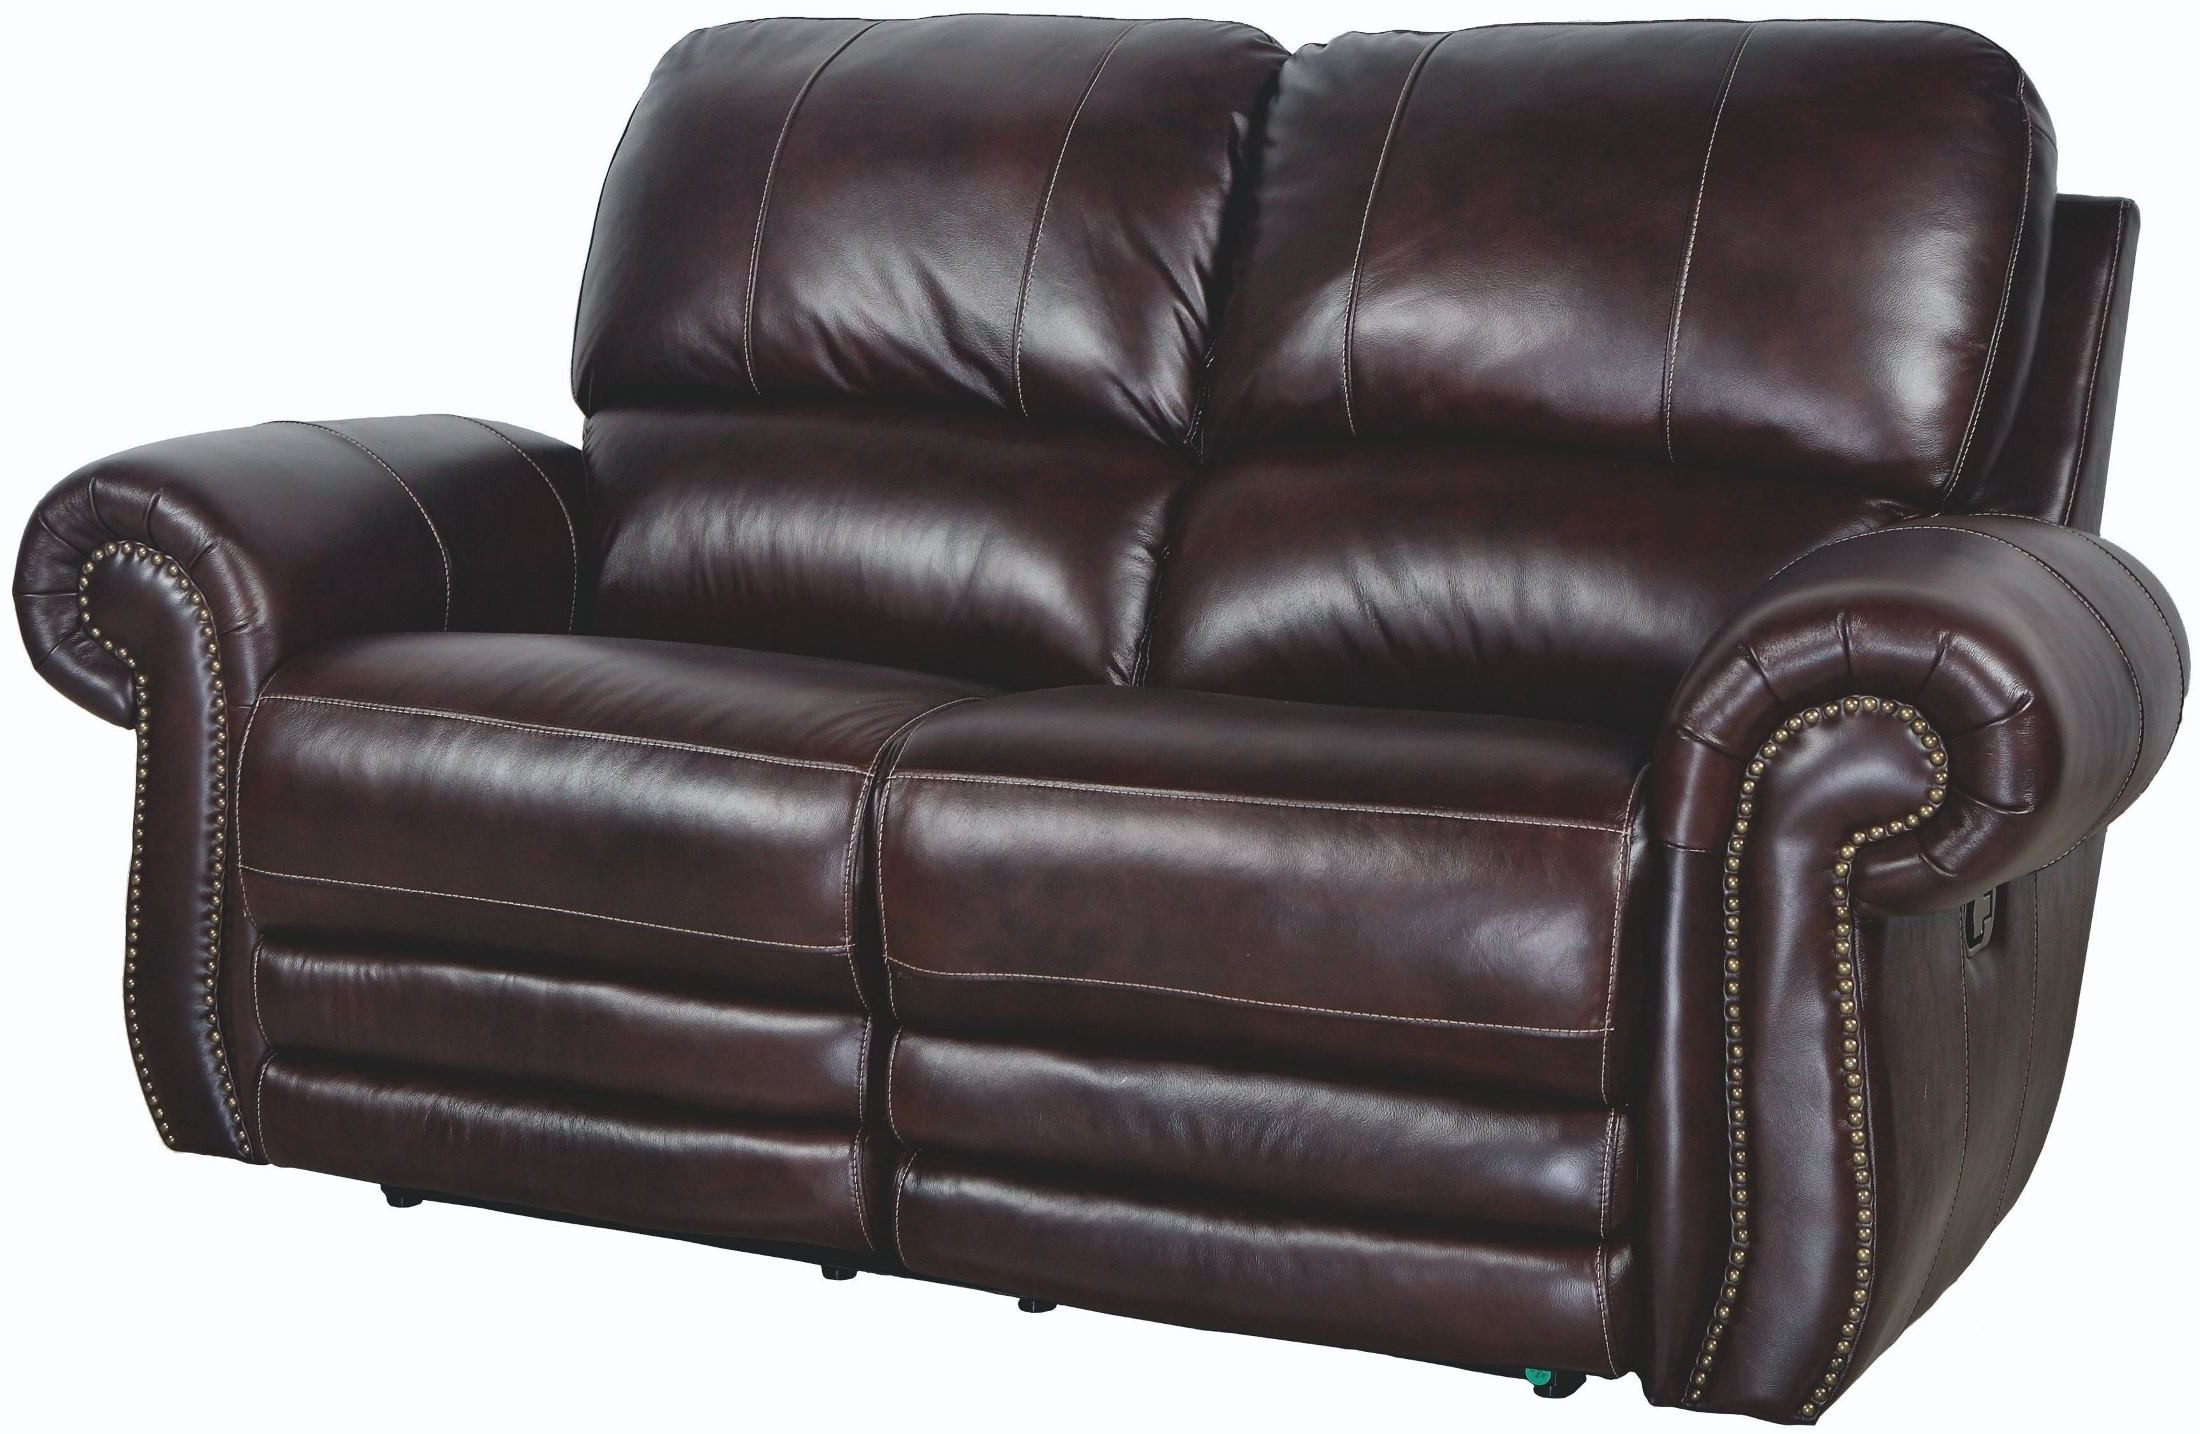 Expedition Brown Power Reclining Sofas Throughout Most Current Rossi Dark Brown Power Reclining Loveseat From New Classic (View 1 of 15)